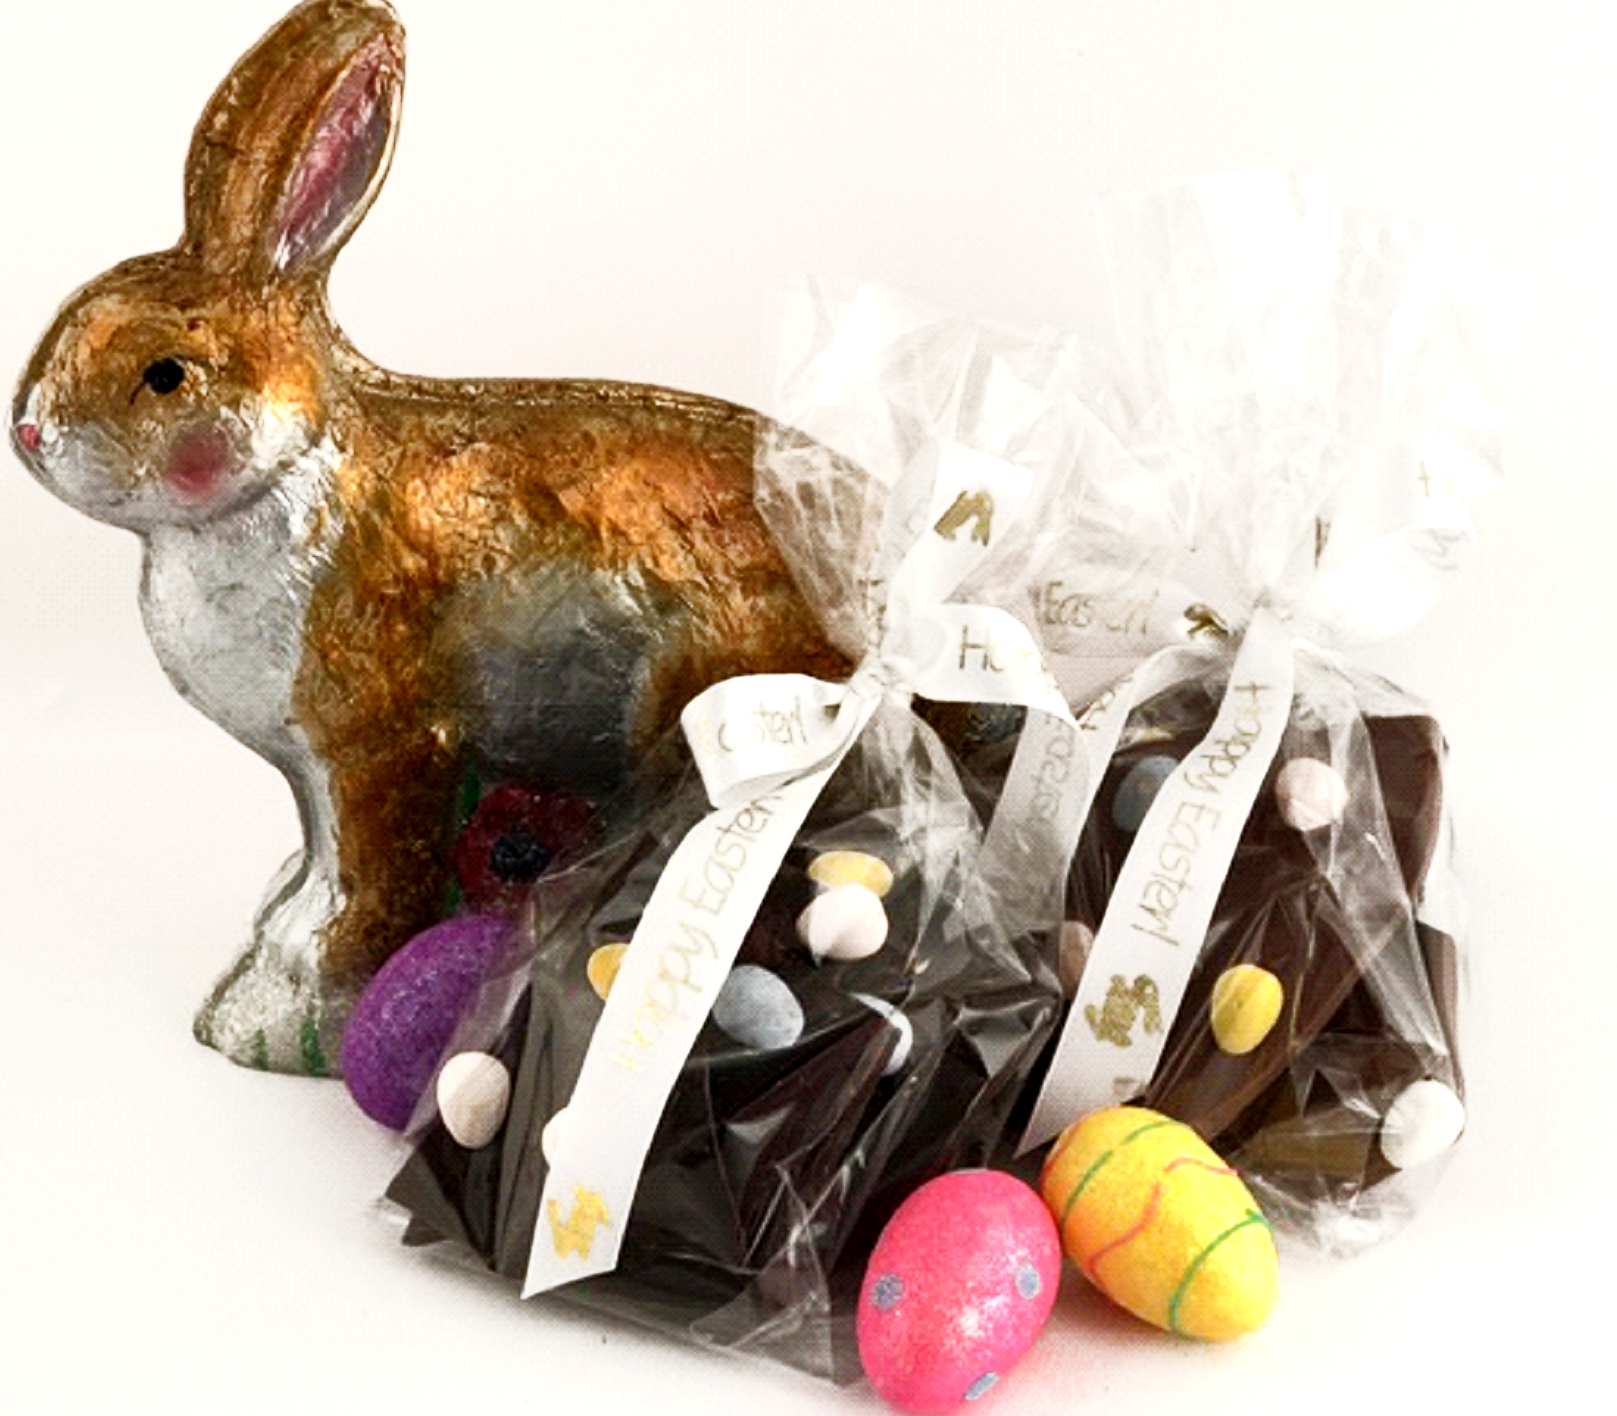 Chocolate Text - Easter Chocolate Bark - with Easter Eggs - set of 2 bags [1/2 lb ea]